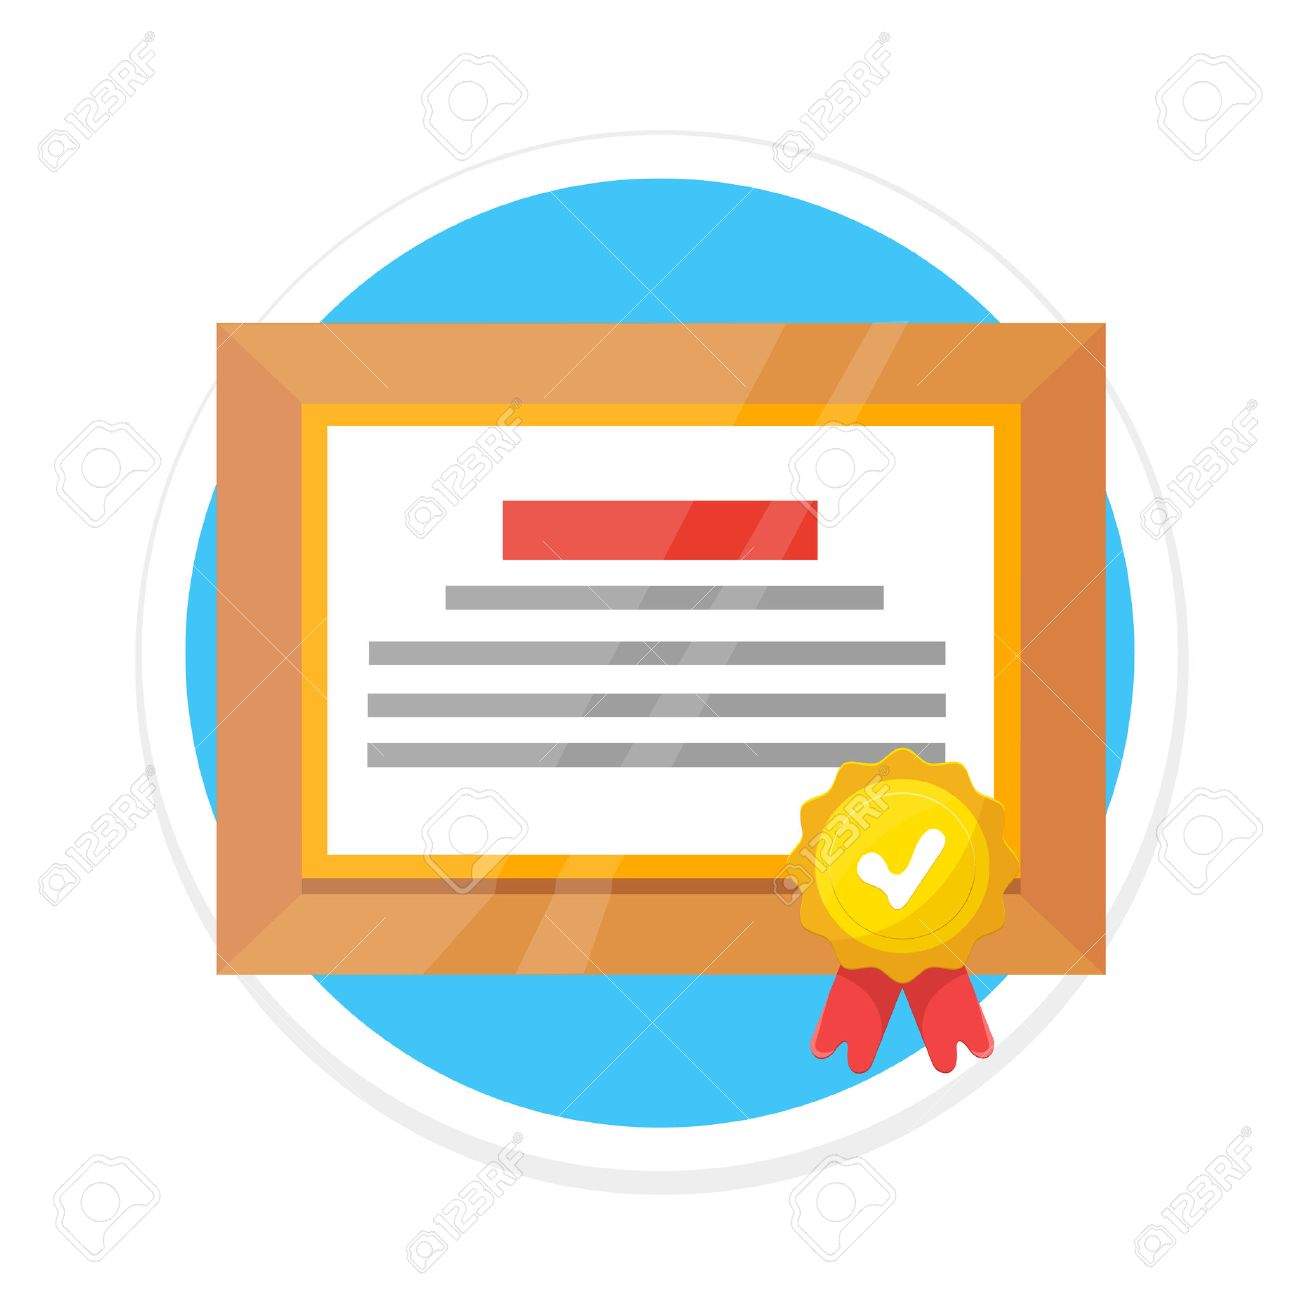 certificate flat round icon royalty free cliparts vectors and rh 123rf com vector certificate vector certificate border